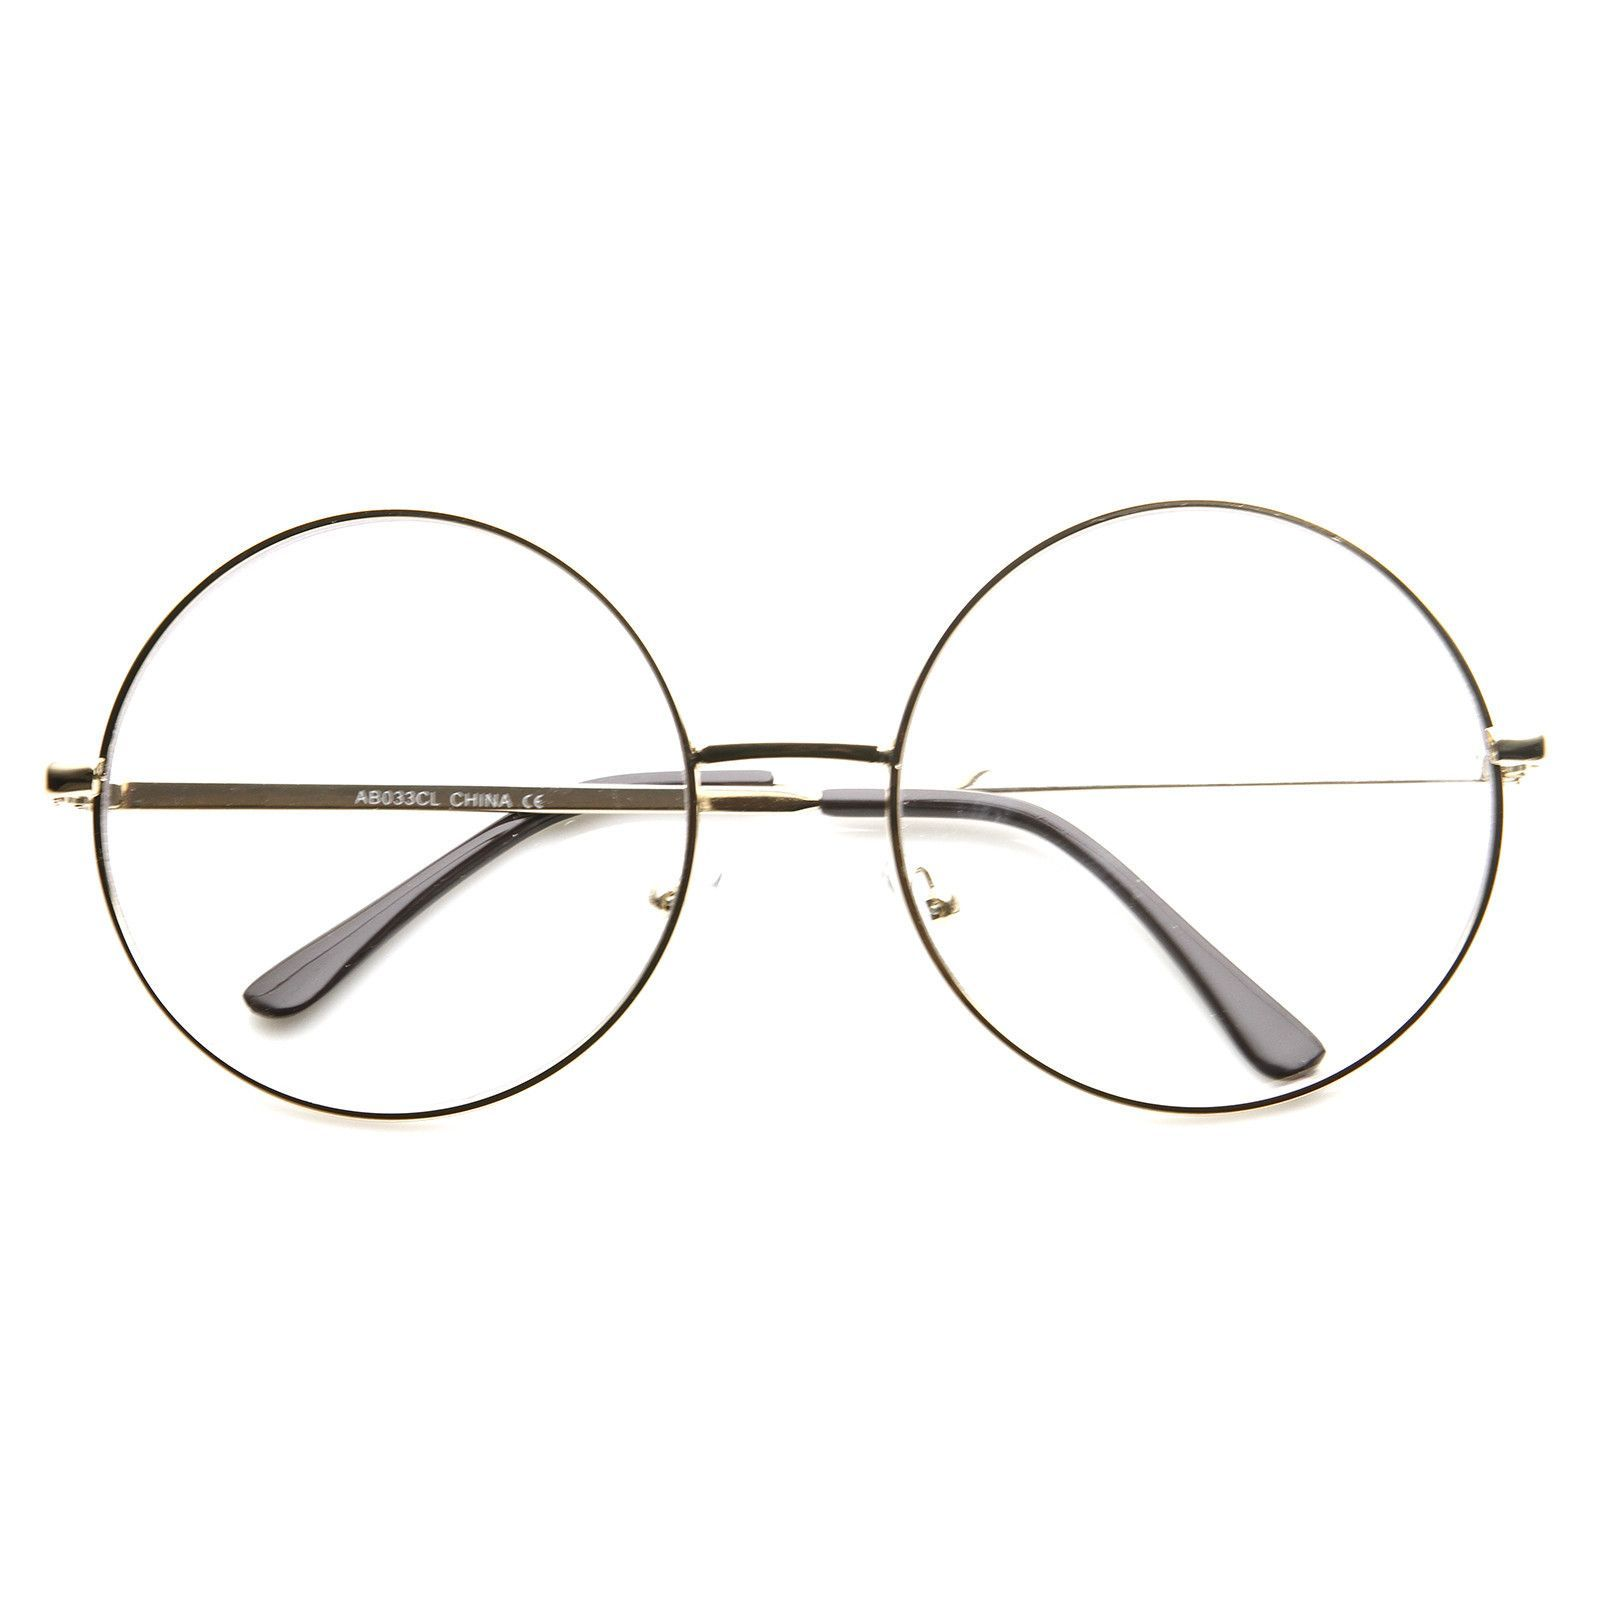 3dc16ab96be2 Vintage Era Super Large Round Circle Metal Clear Lens Glasses 8714 from  zeroUV